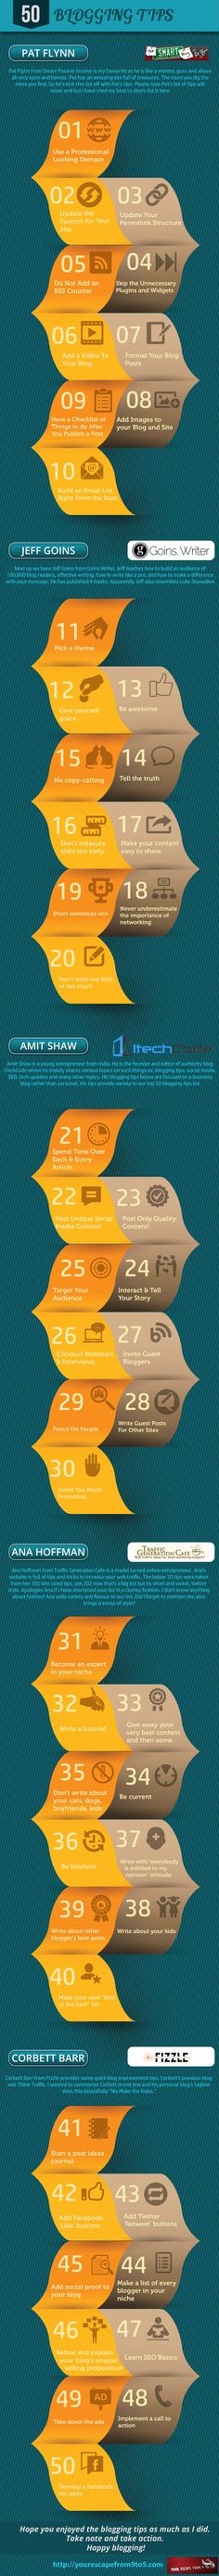 Great Blogging Tips: An Infographic   Retailing: From A to Z by Joel Evans